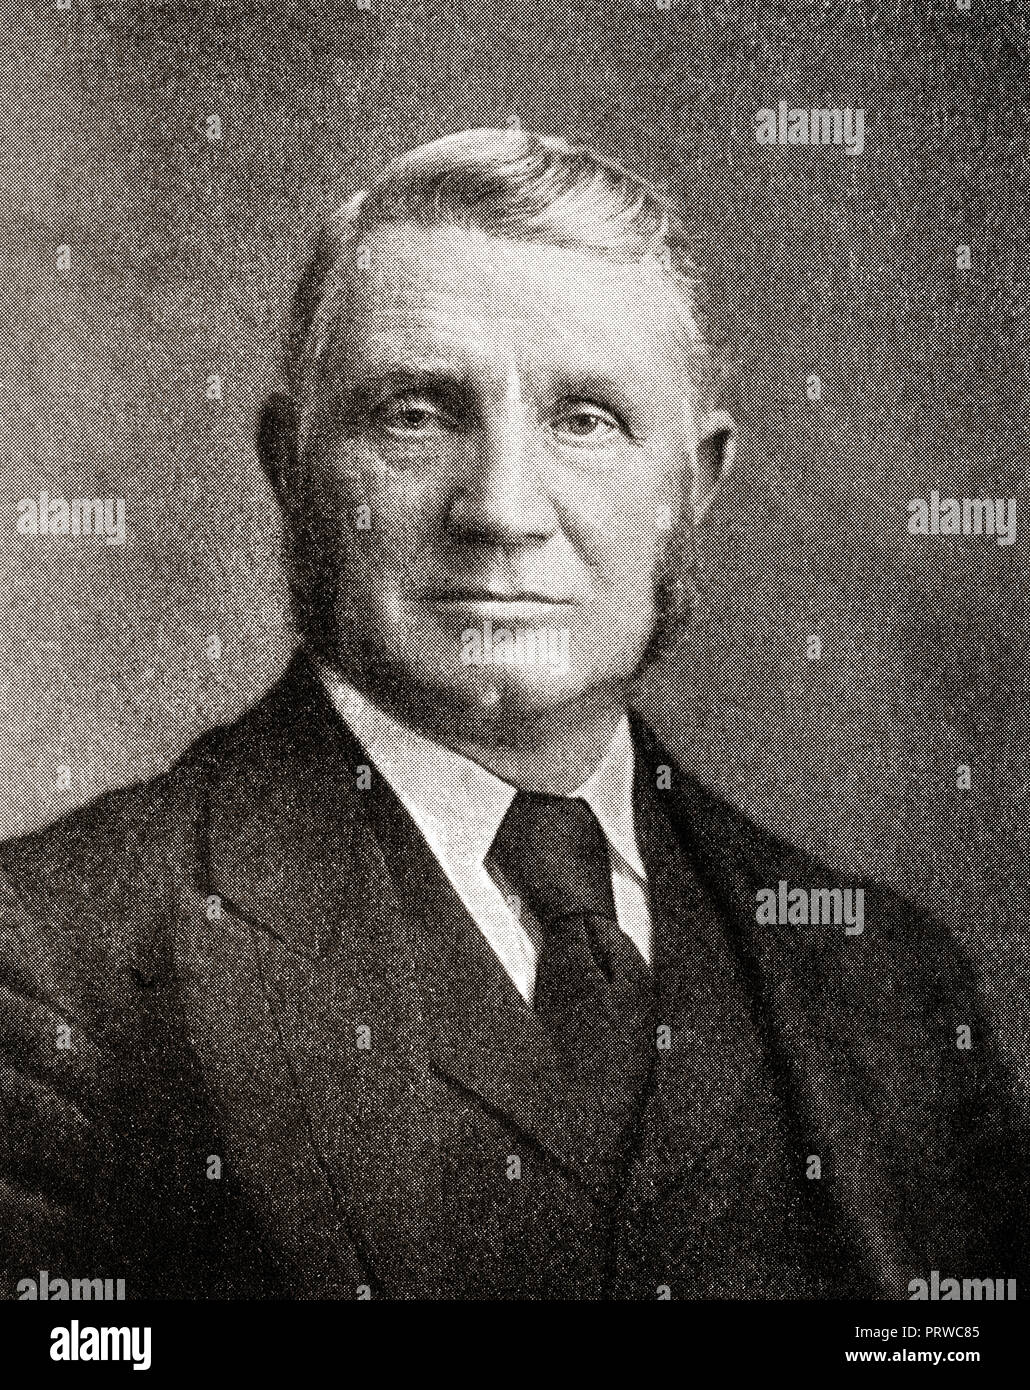 Sir William Arrol, 1839 – 1913.  Scottish civil engineer, bridge builder, and Liberal Unionist Party politician.  From The Business Encyclopedia and Legal Adviser, published 1920. - Stock Image